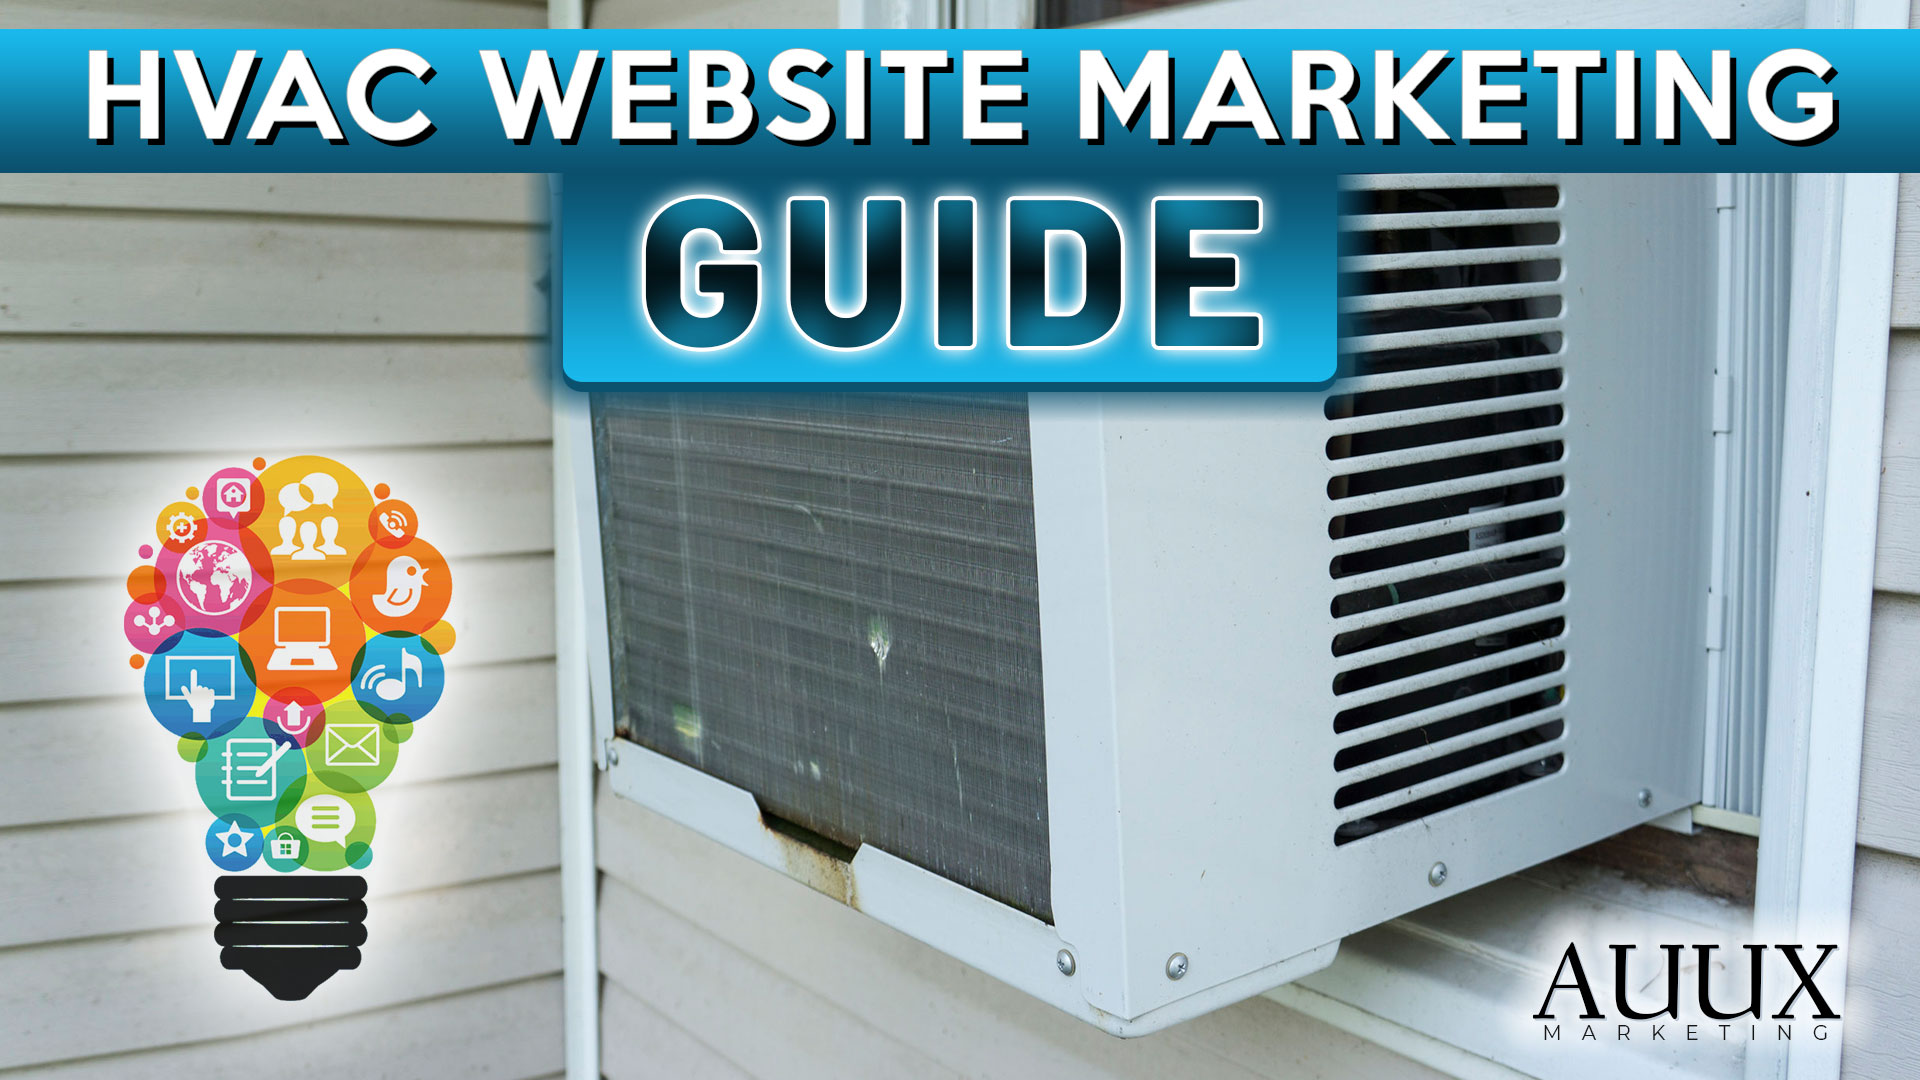 HVAC Website Marketing Guide